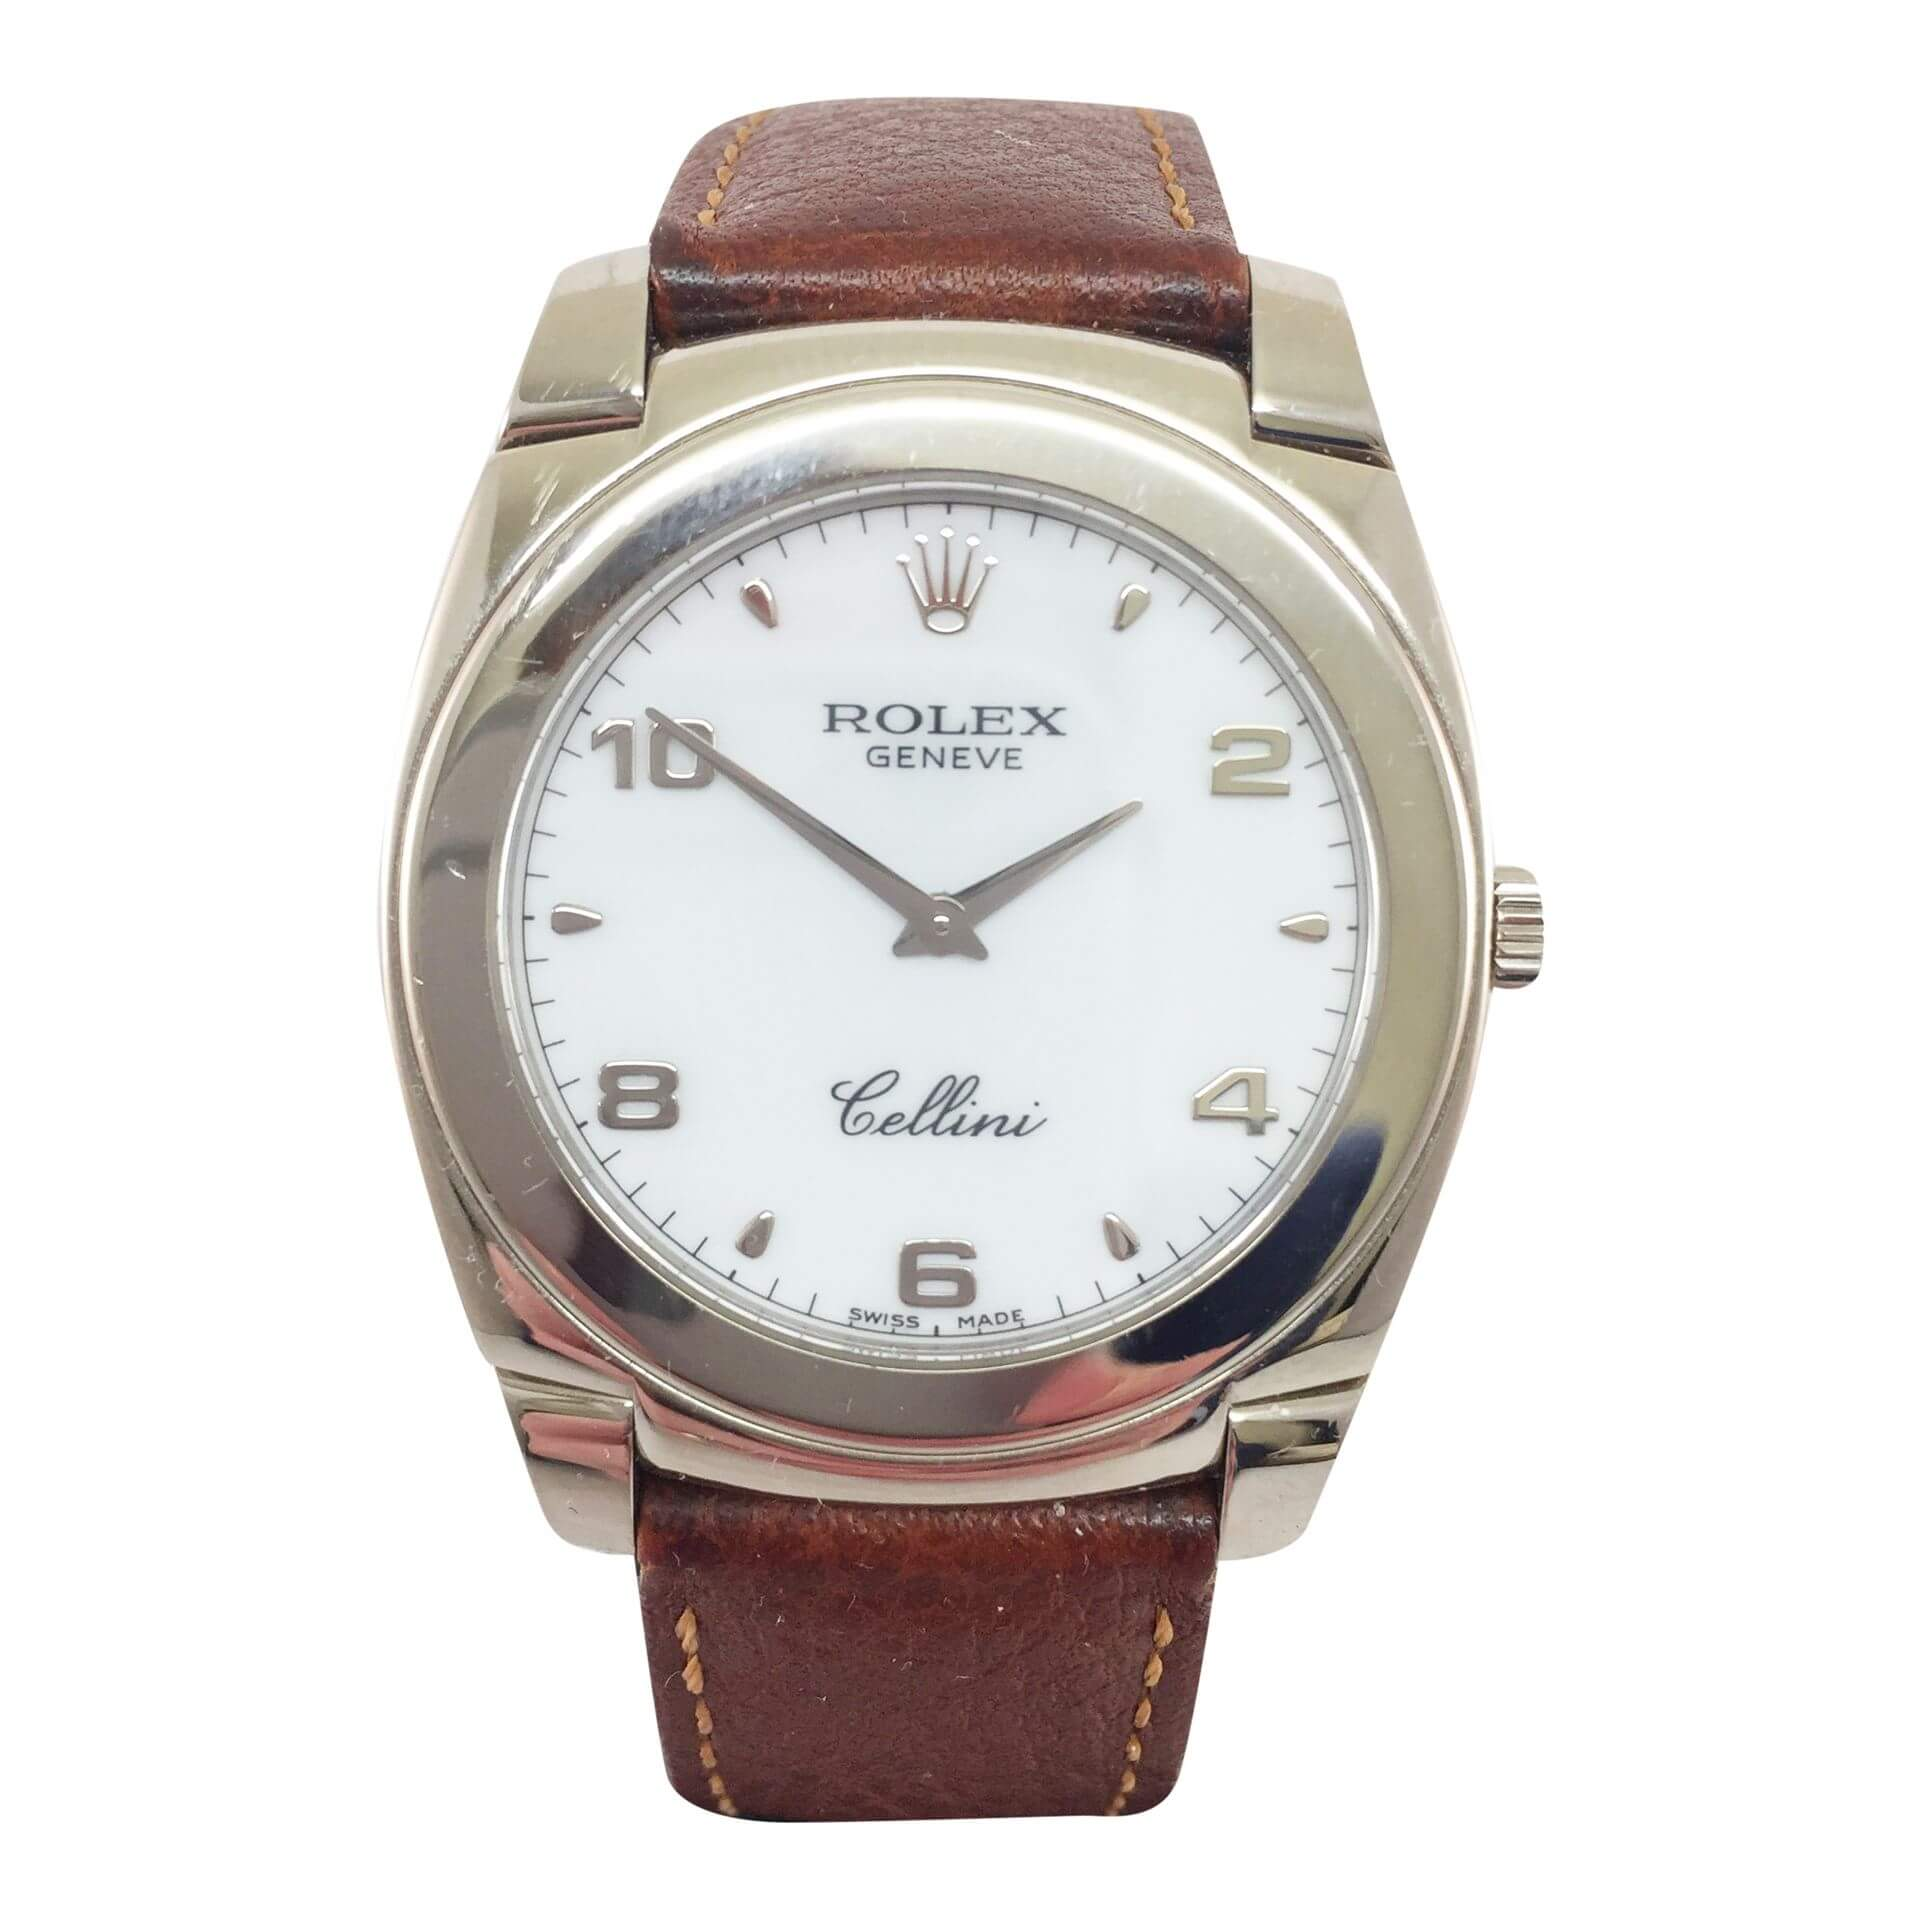 rolex cellini 5330 18 carat white gold vintage mens watch open rolex cellini 5330 18 carat white gold vintage mens watch